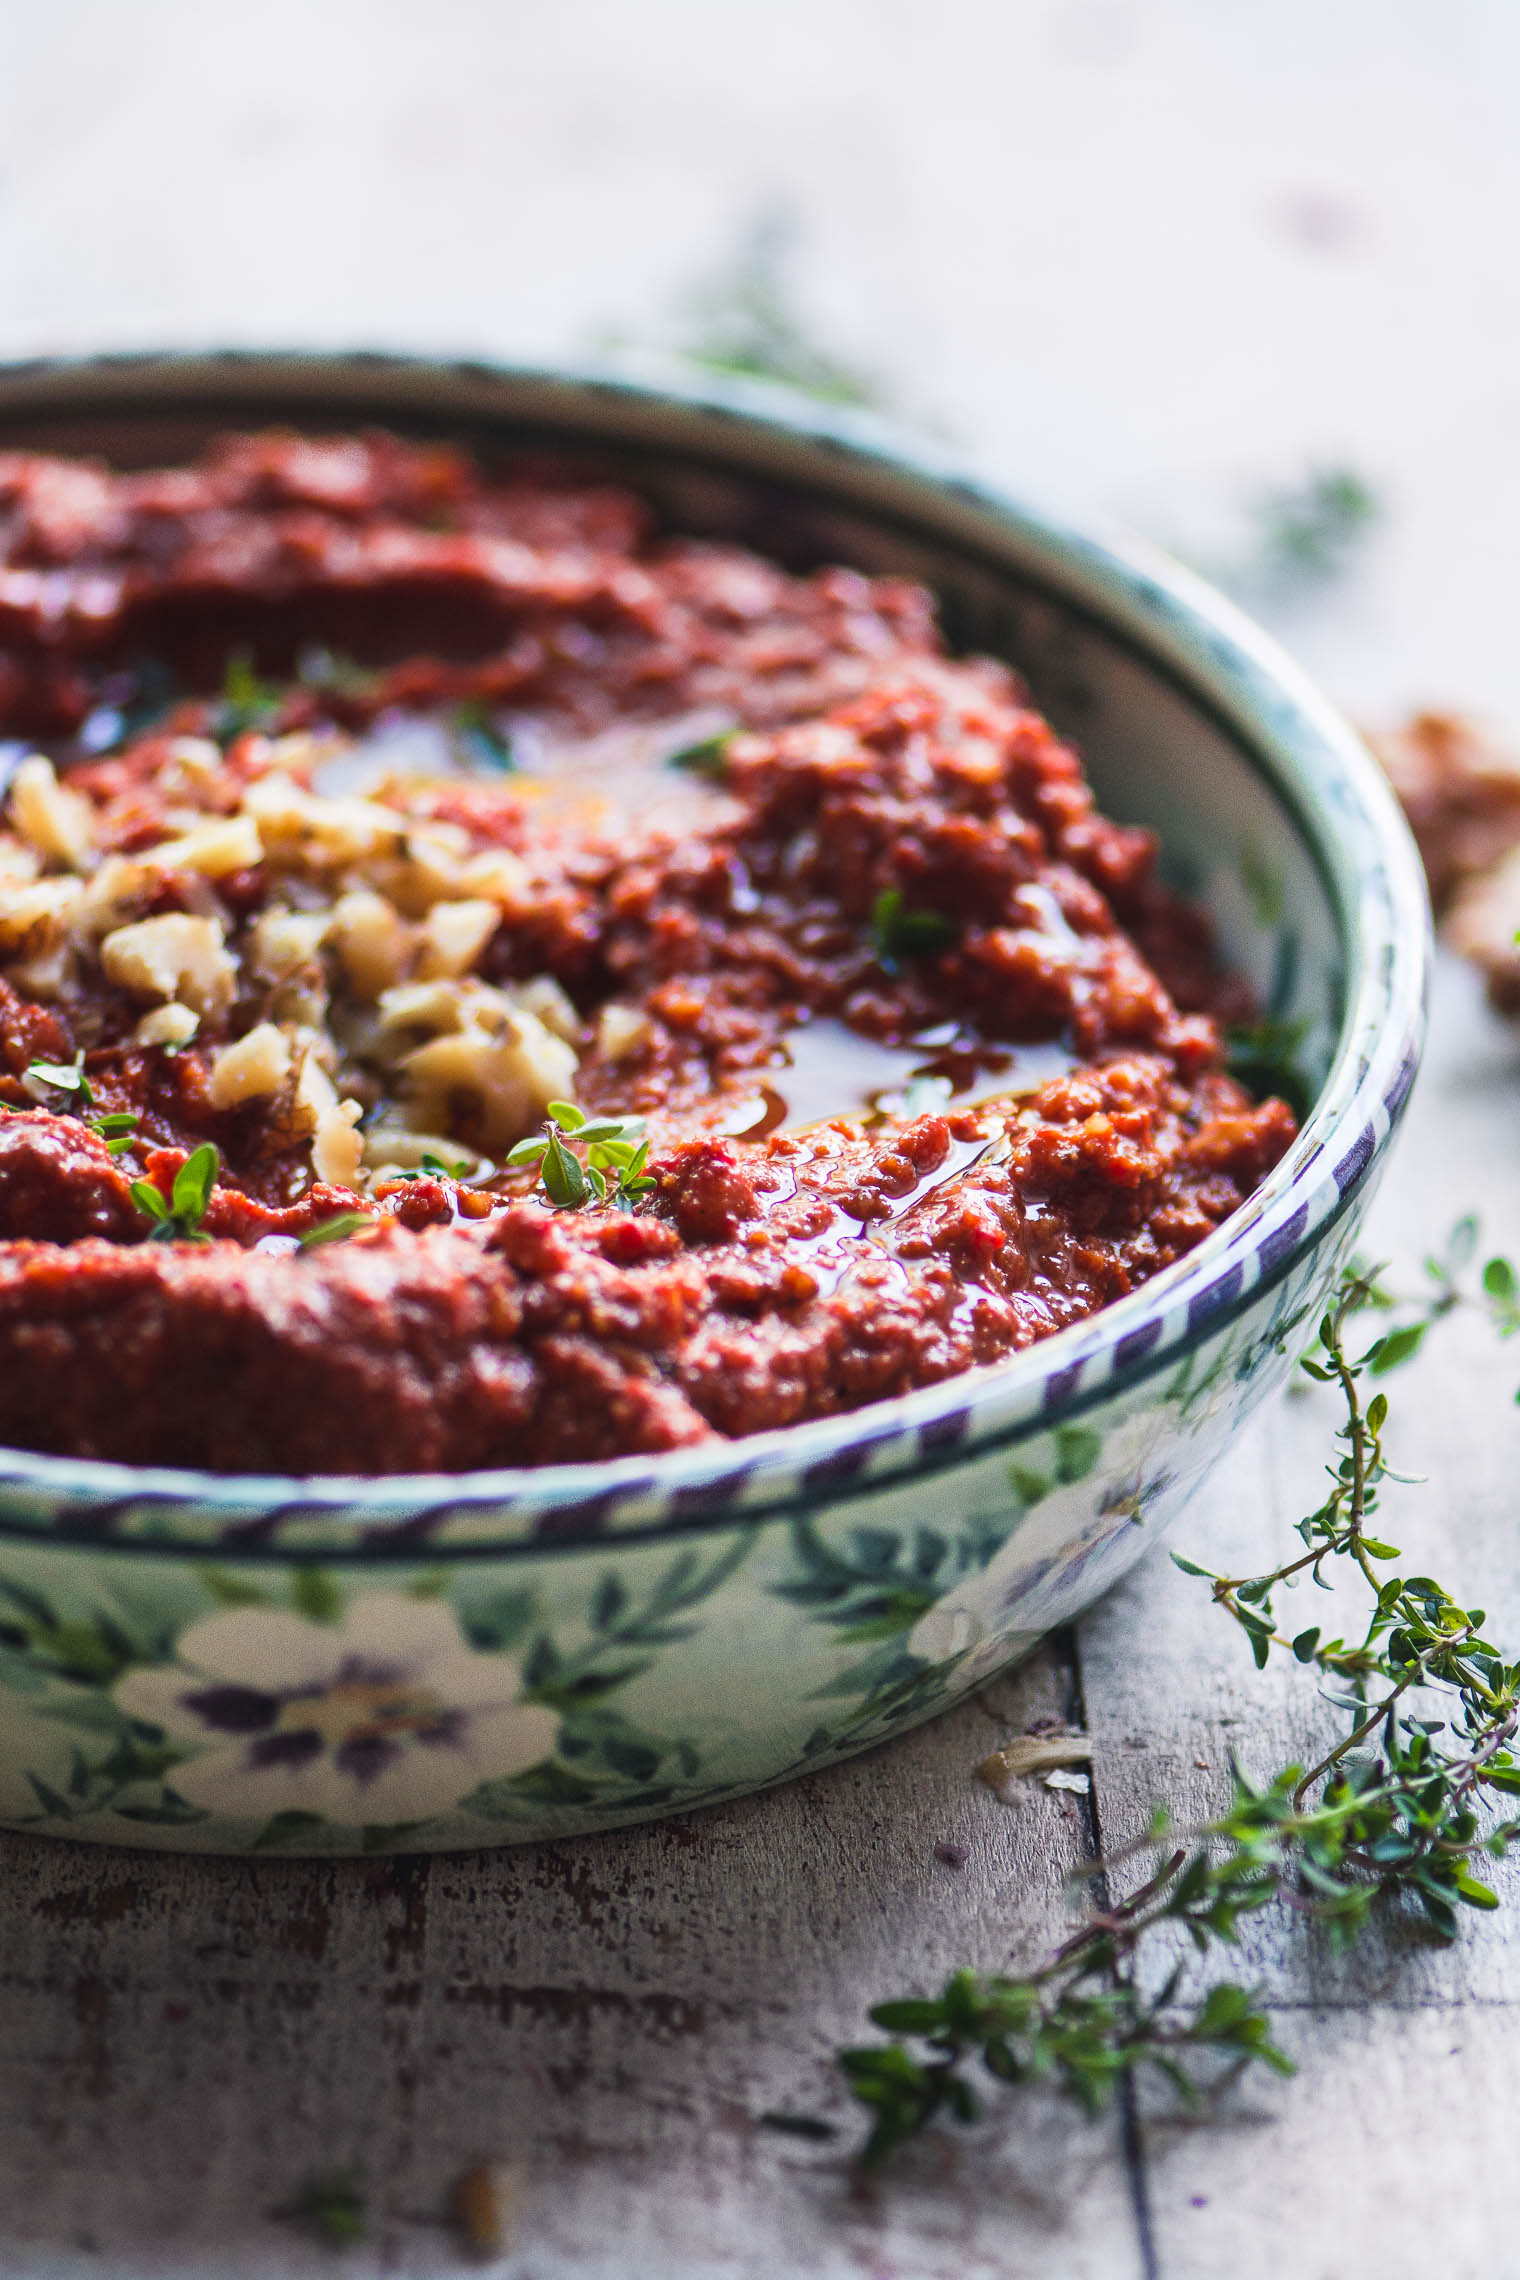 Muhammara (roasted red pepper & walnut dip) ~ Muhammara isn't quite as well known as its sisters hummus and baba ganoush, but it's equally amazing and versatile.